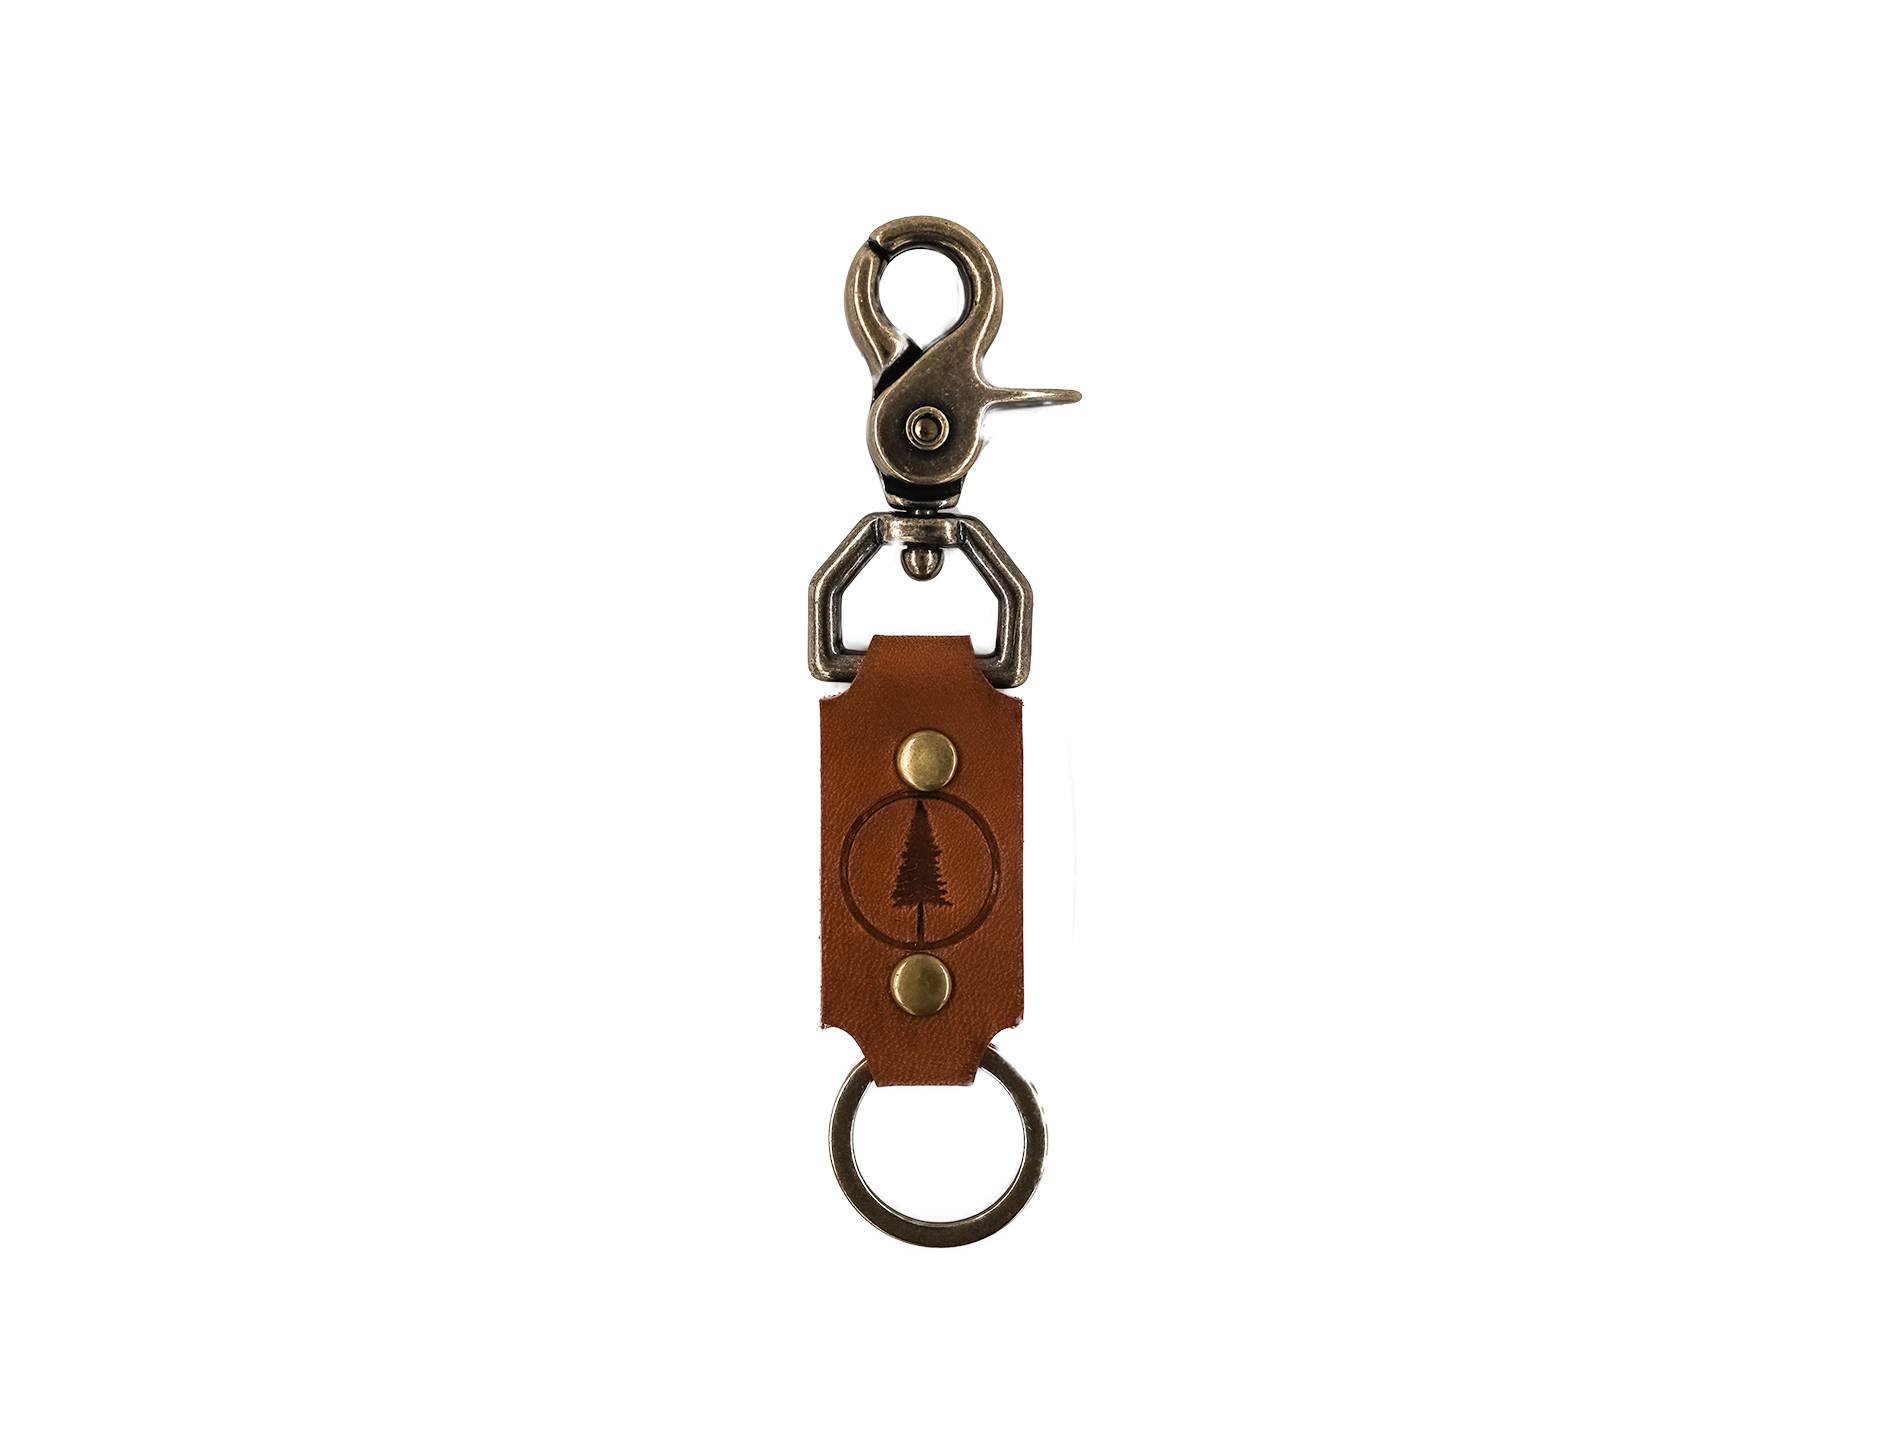 Sequoia Keychain - Sequoia Supply Co.